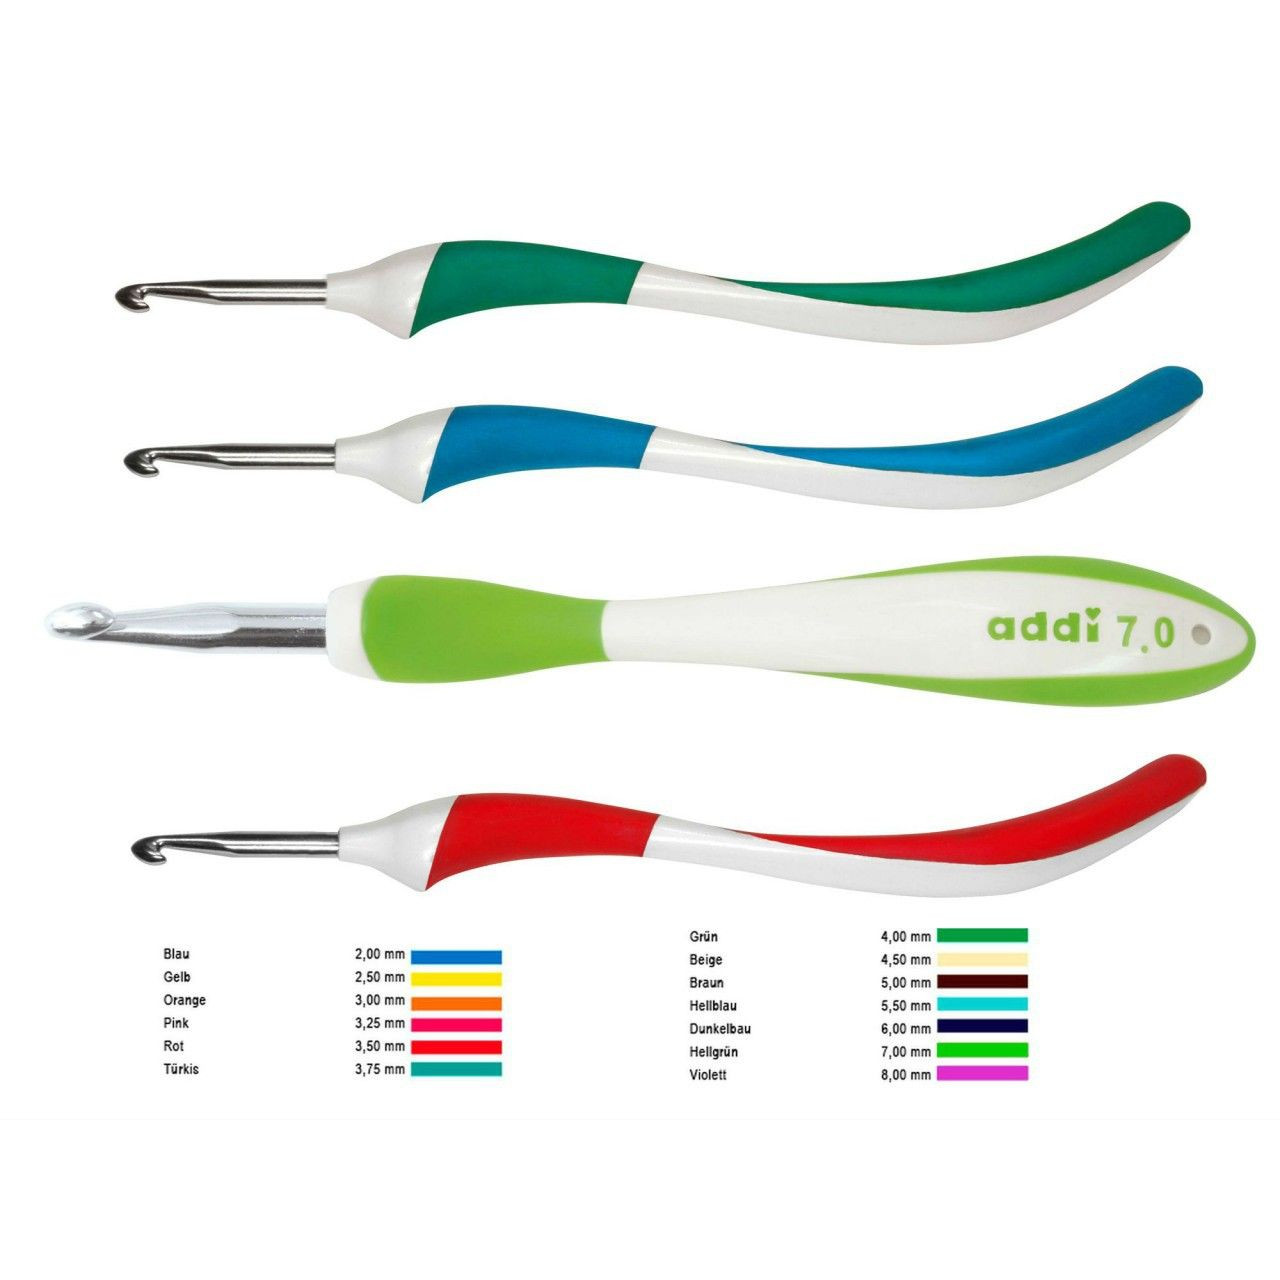 Addi Crochet Hooks Best Of Crochet Addi Swing Crochet Hooks Sizes 2mm to 8mm Of Adorable 43 Pictures Addi Crochet Hooks